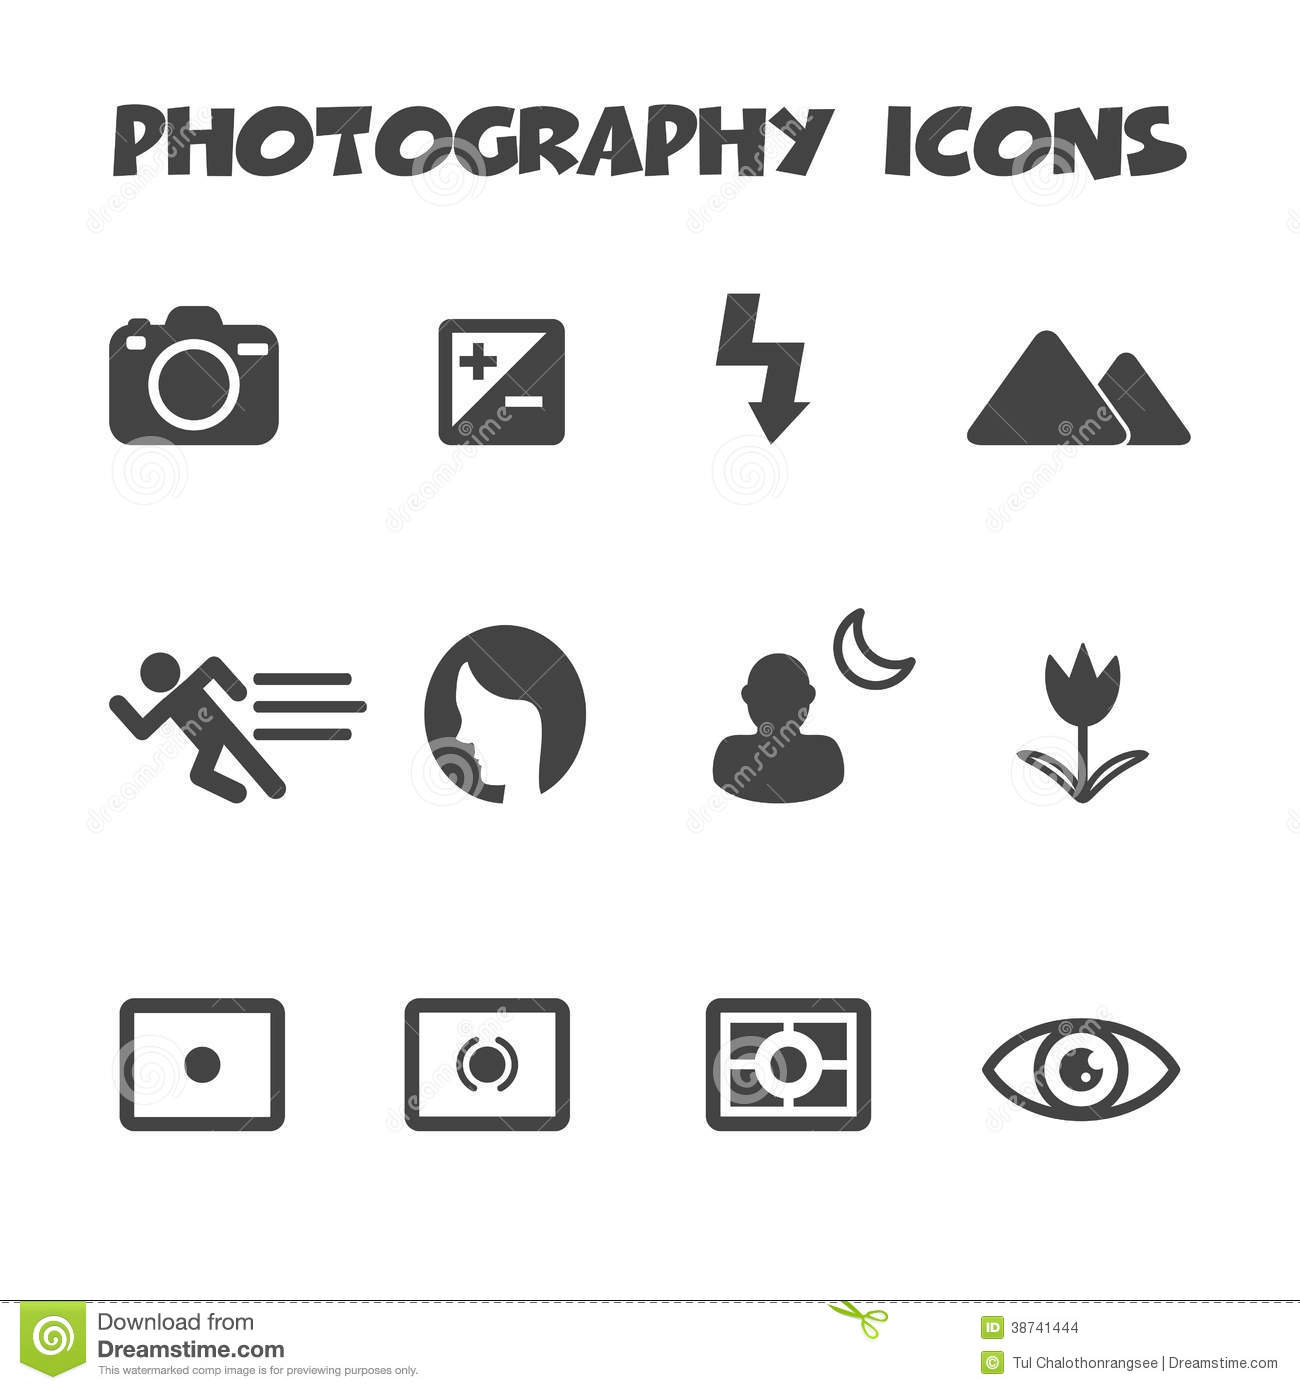 Photography icons stock vector. Illustration of exposure